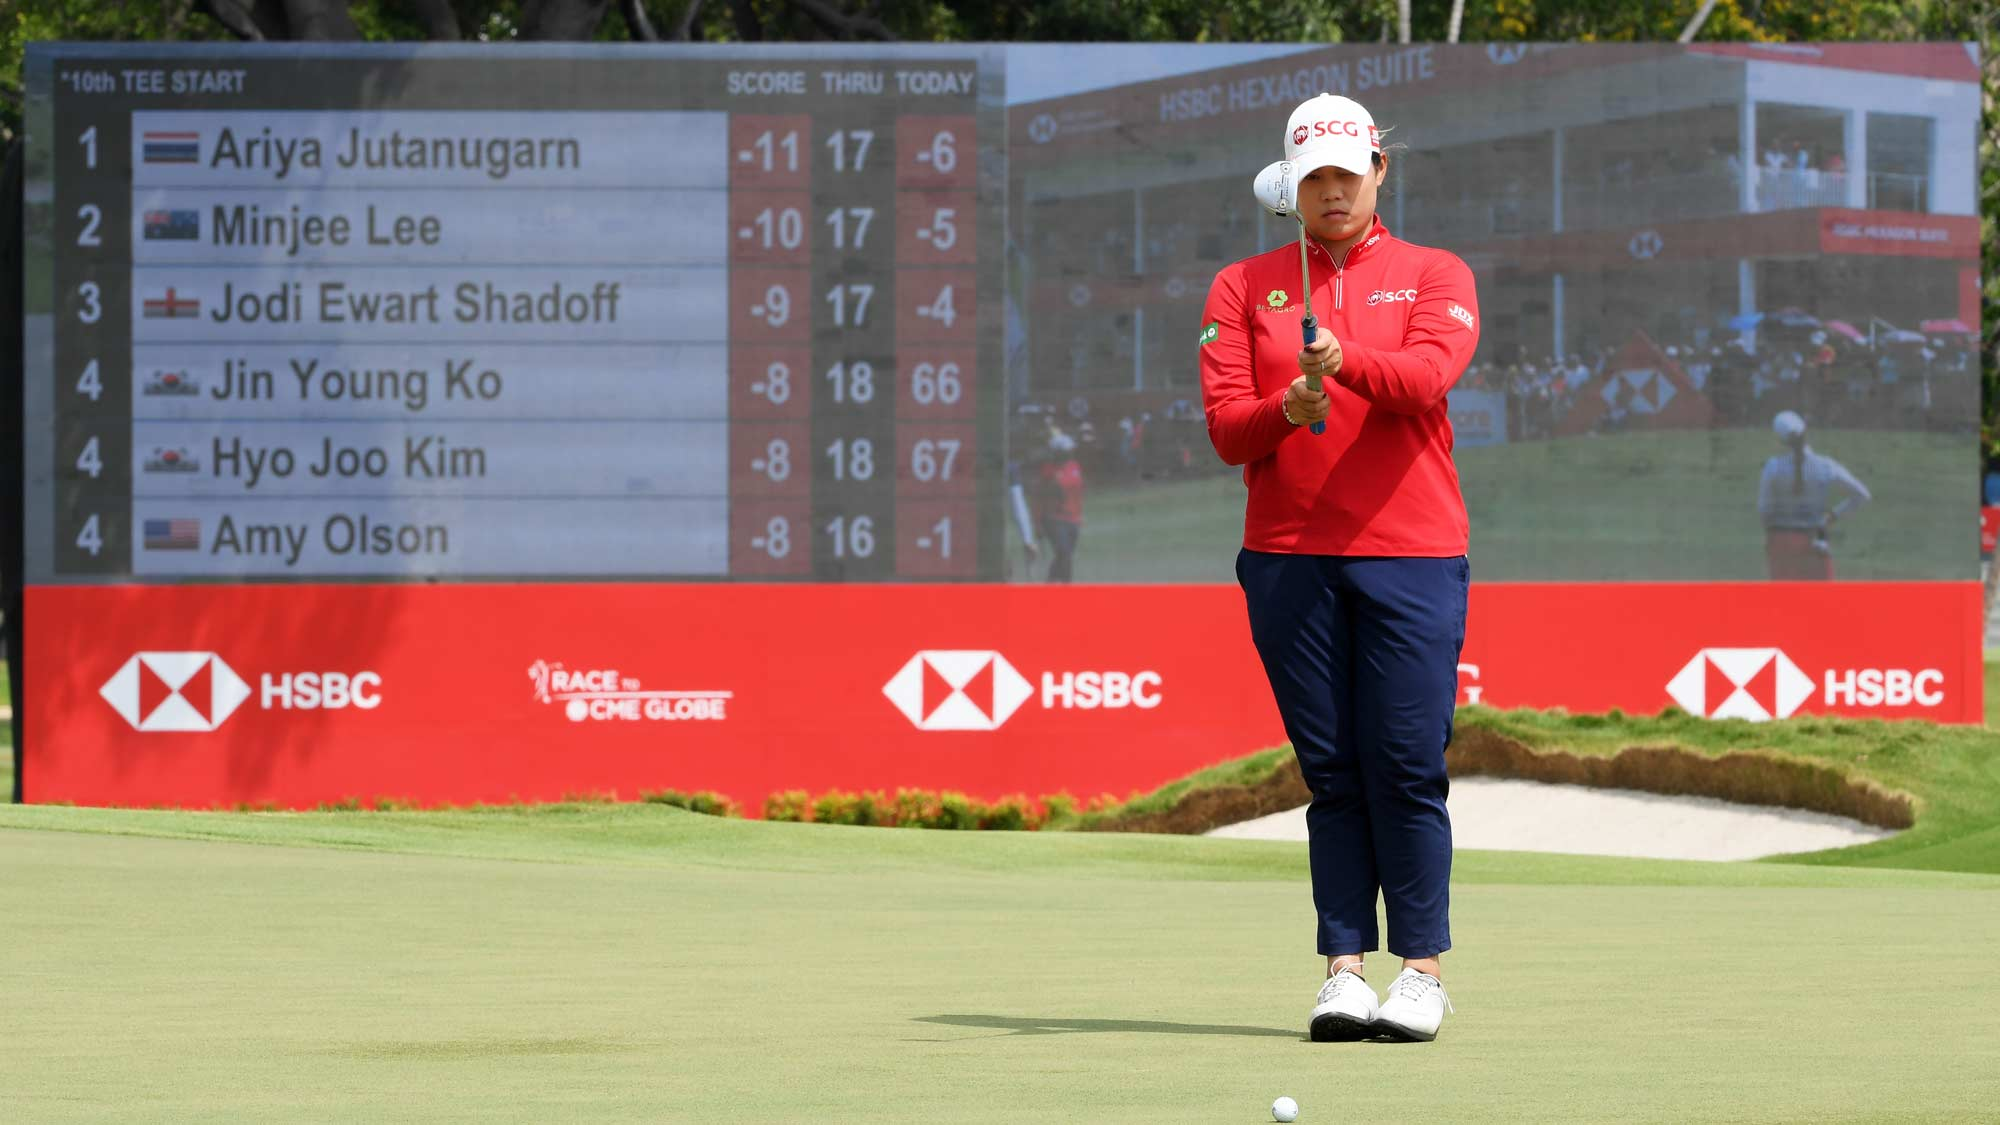 Ariya Jutanugarn of Thailand lines up a putt on the 18th green during the third round of the HSBC Women's World Championship at Sentosa Golf Club on March 02, 2019 in Singapore